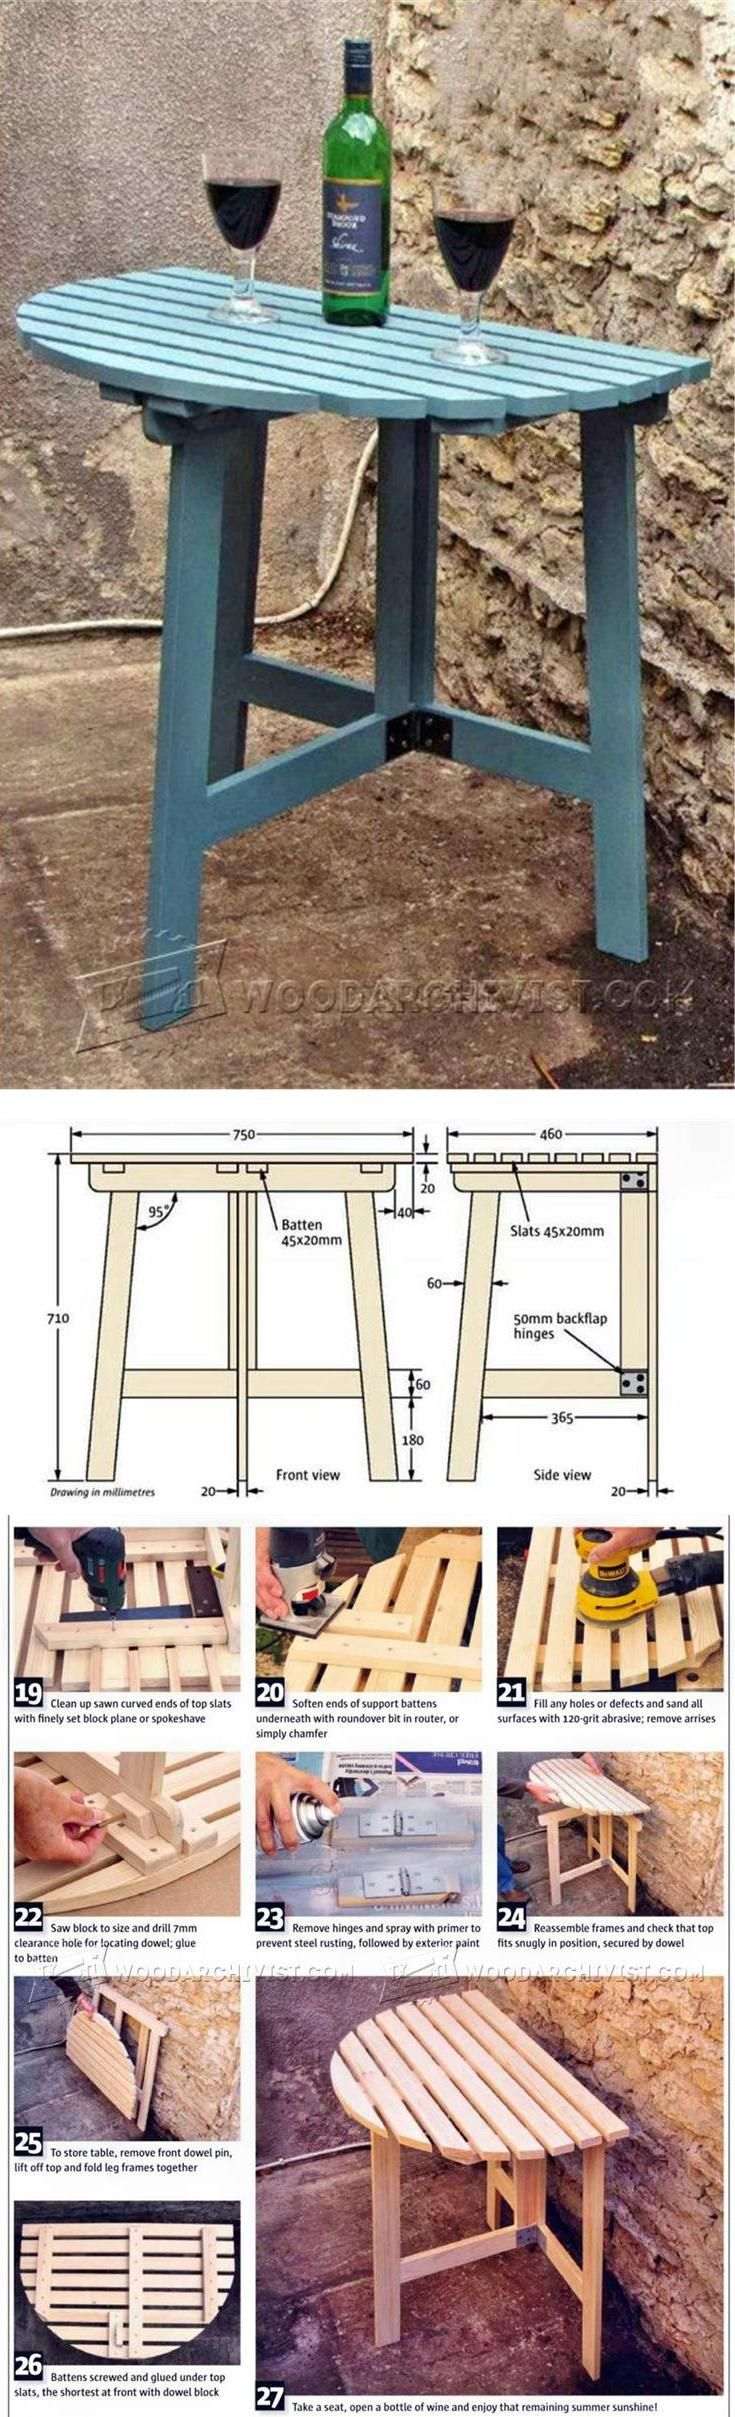 Folding Outdoor Table Plans   Outdoor Furniture Plans And Projects |  WoodArchivist.com | WoodArchivist